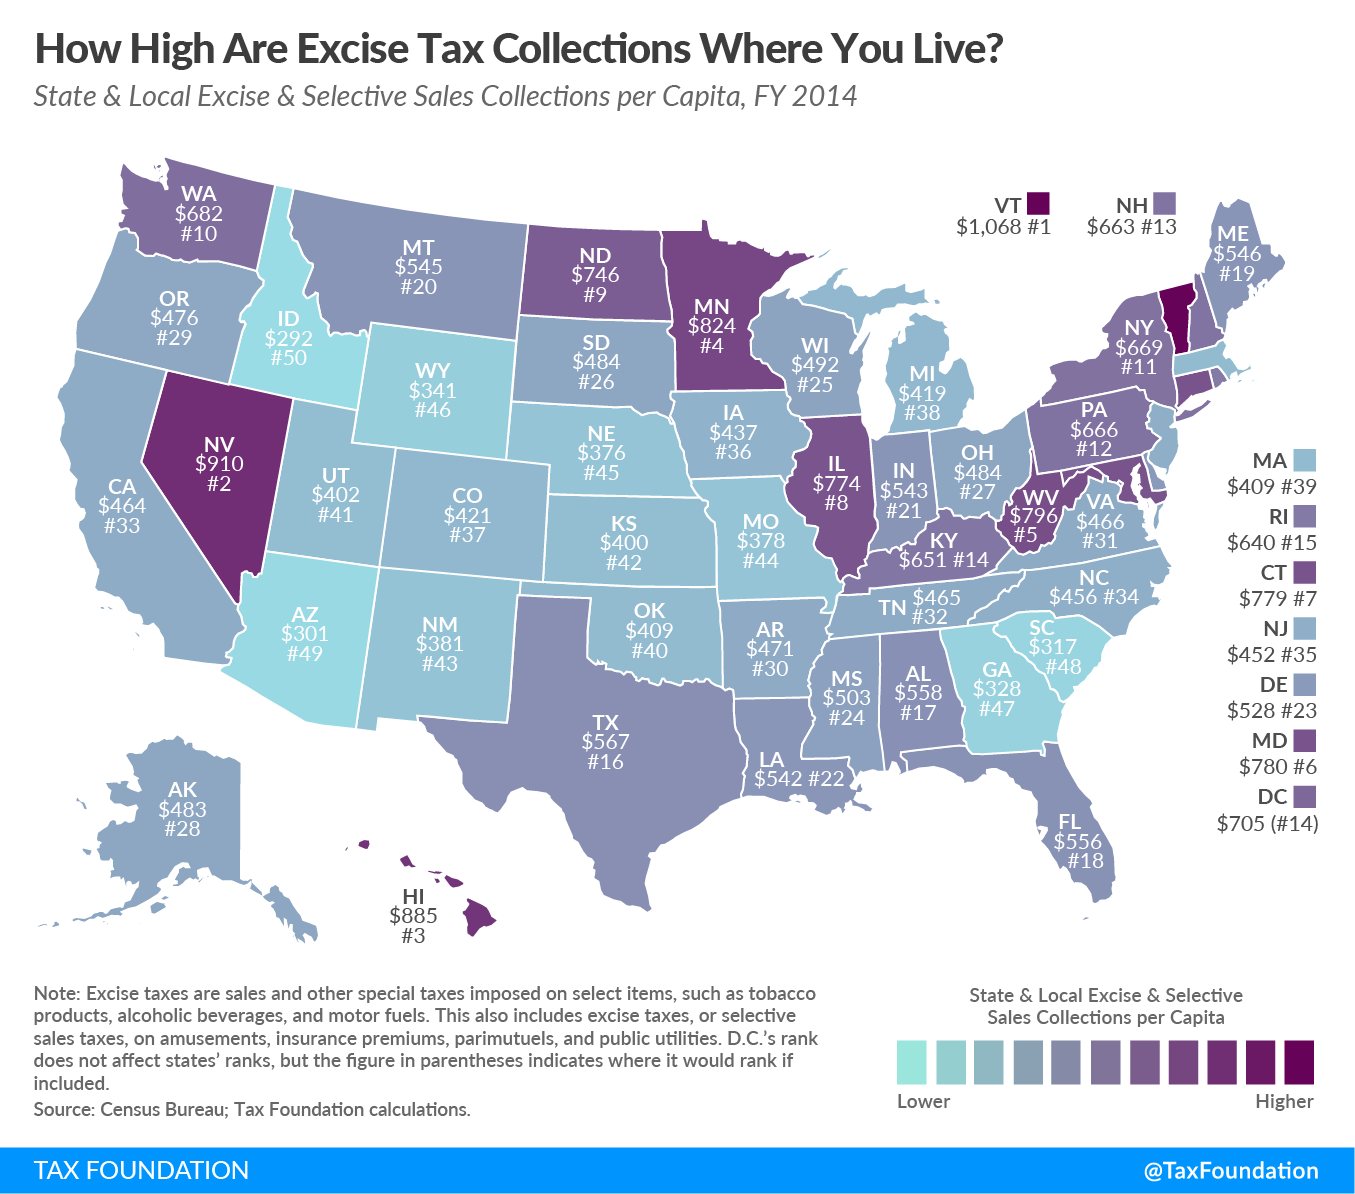 State & Local Excise Tax Collections per Capita